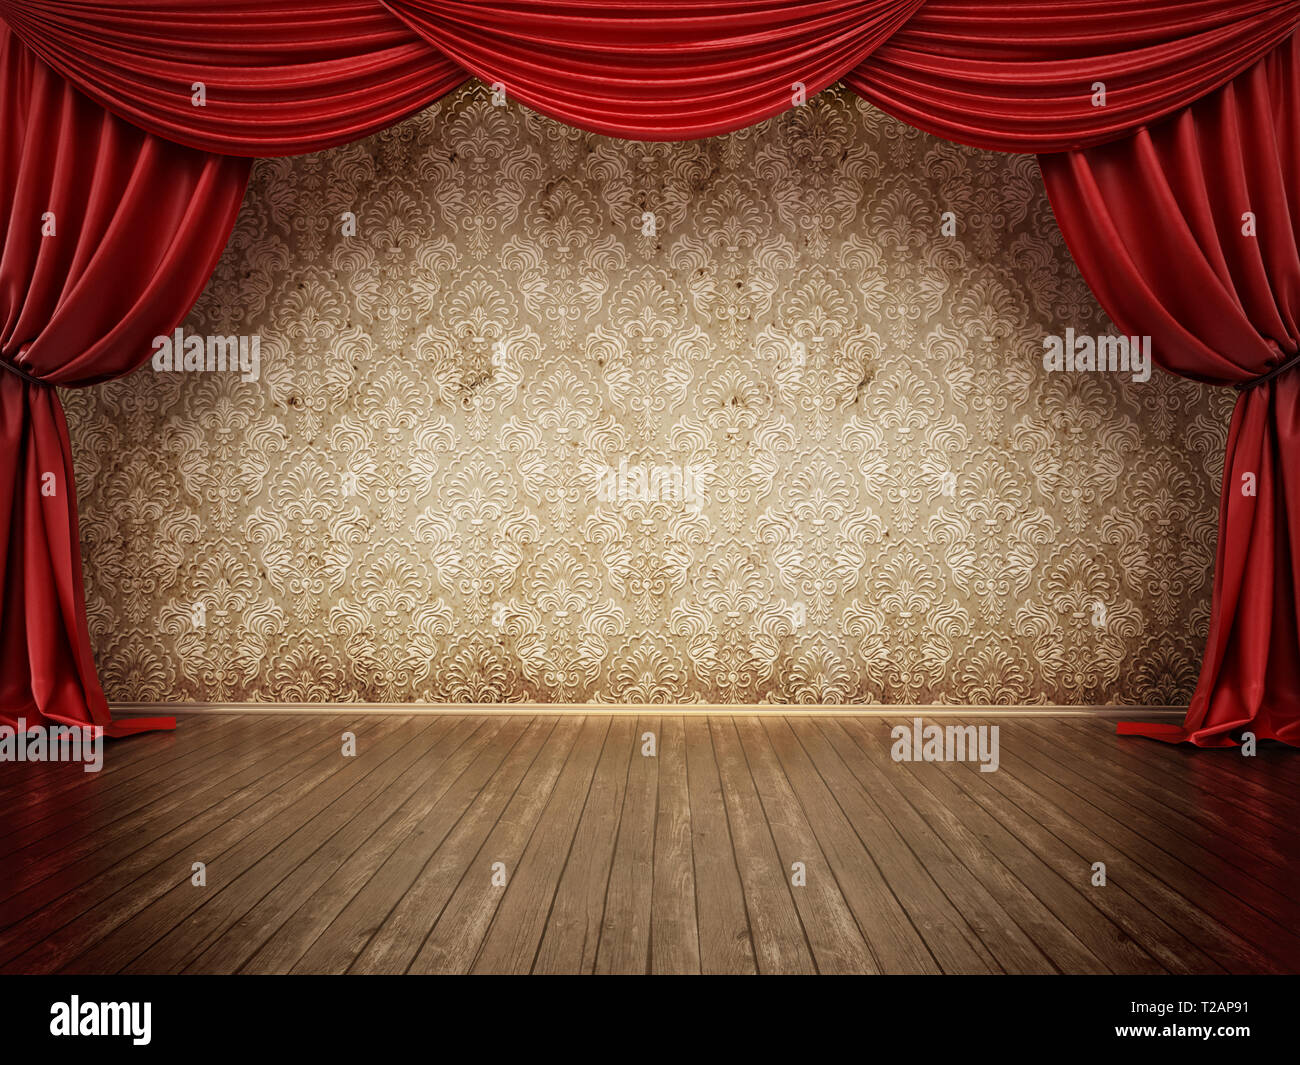 Theater stage with red curtain and parquet ground  3D